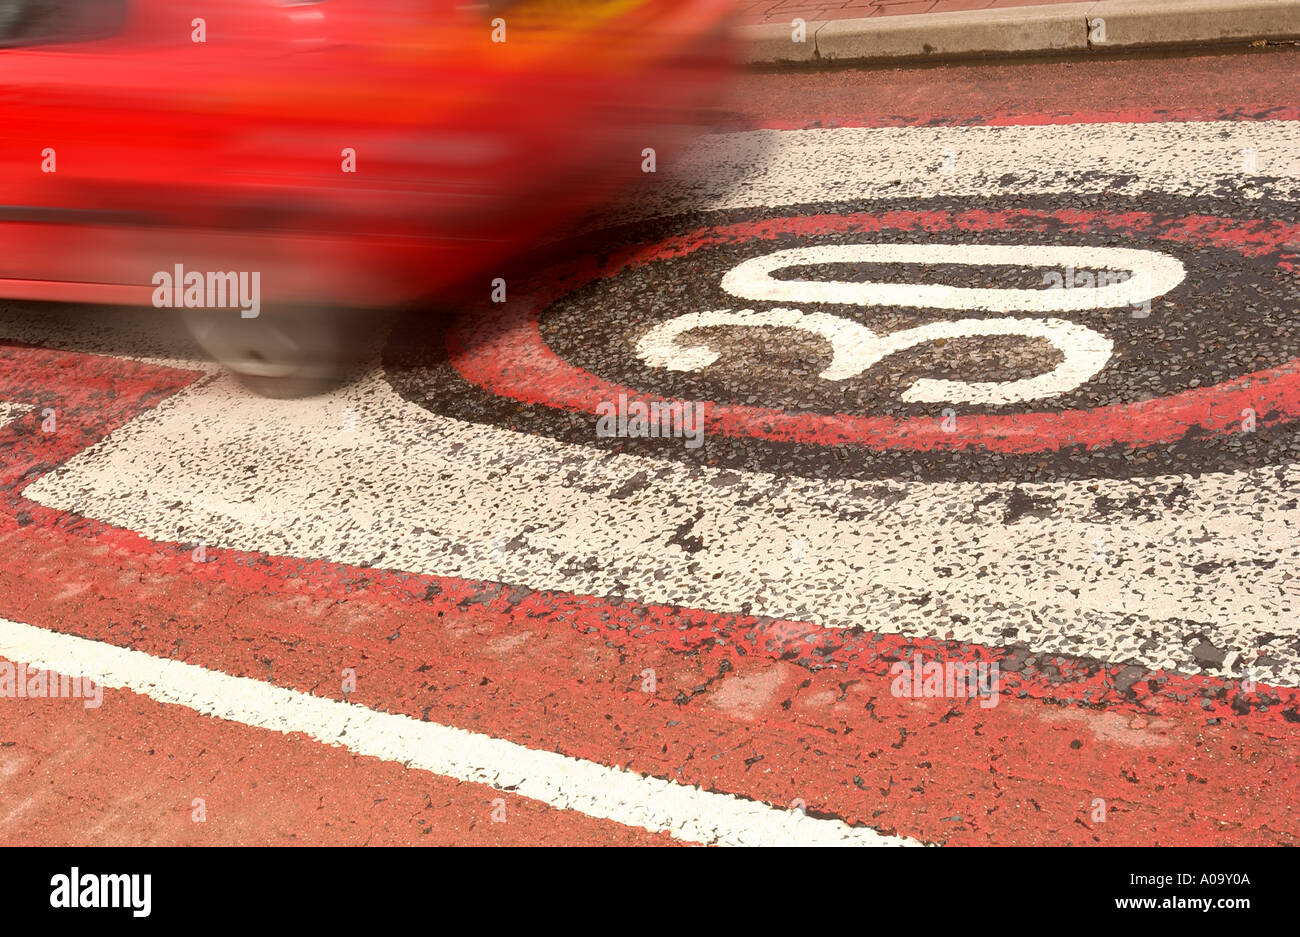 A CAR PASSES OVER A WORN THIRTY MILES PER HOUR SPEED WARNINGS PAINTED ONTO THE ROAD UK - Stock Image